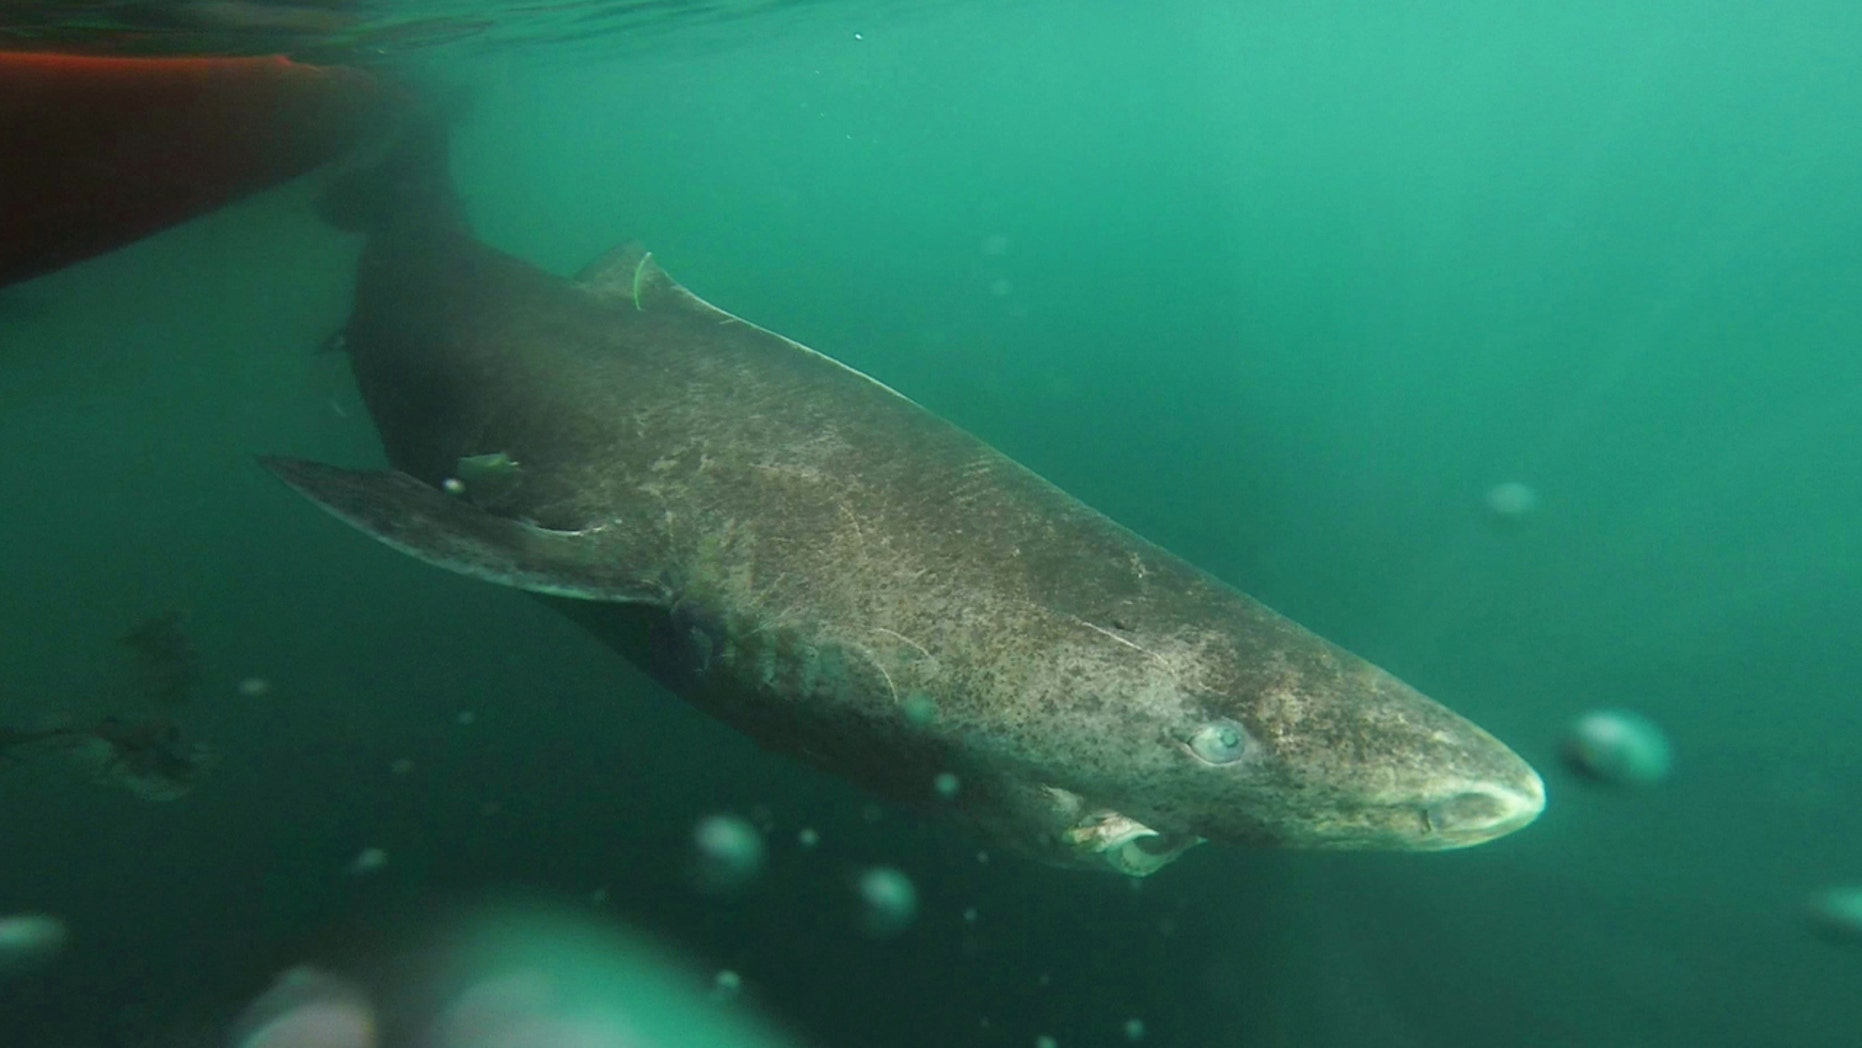 Aug. 11, 2016: This undated photo shows a Greenland shark slowly swimming away from a boat, returning to the deep and cold waters of the Uummannaq Fjord in northwestern Greenland during a tag -and- release program in Norway and Greenland.